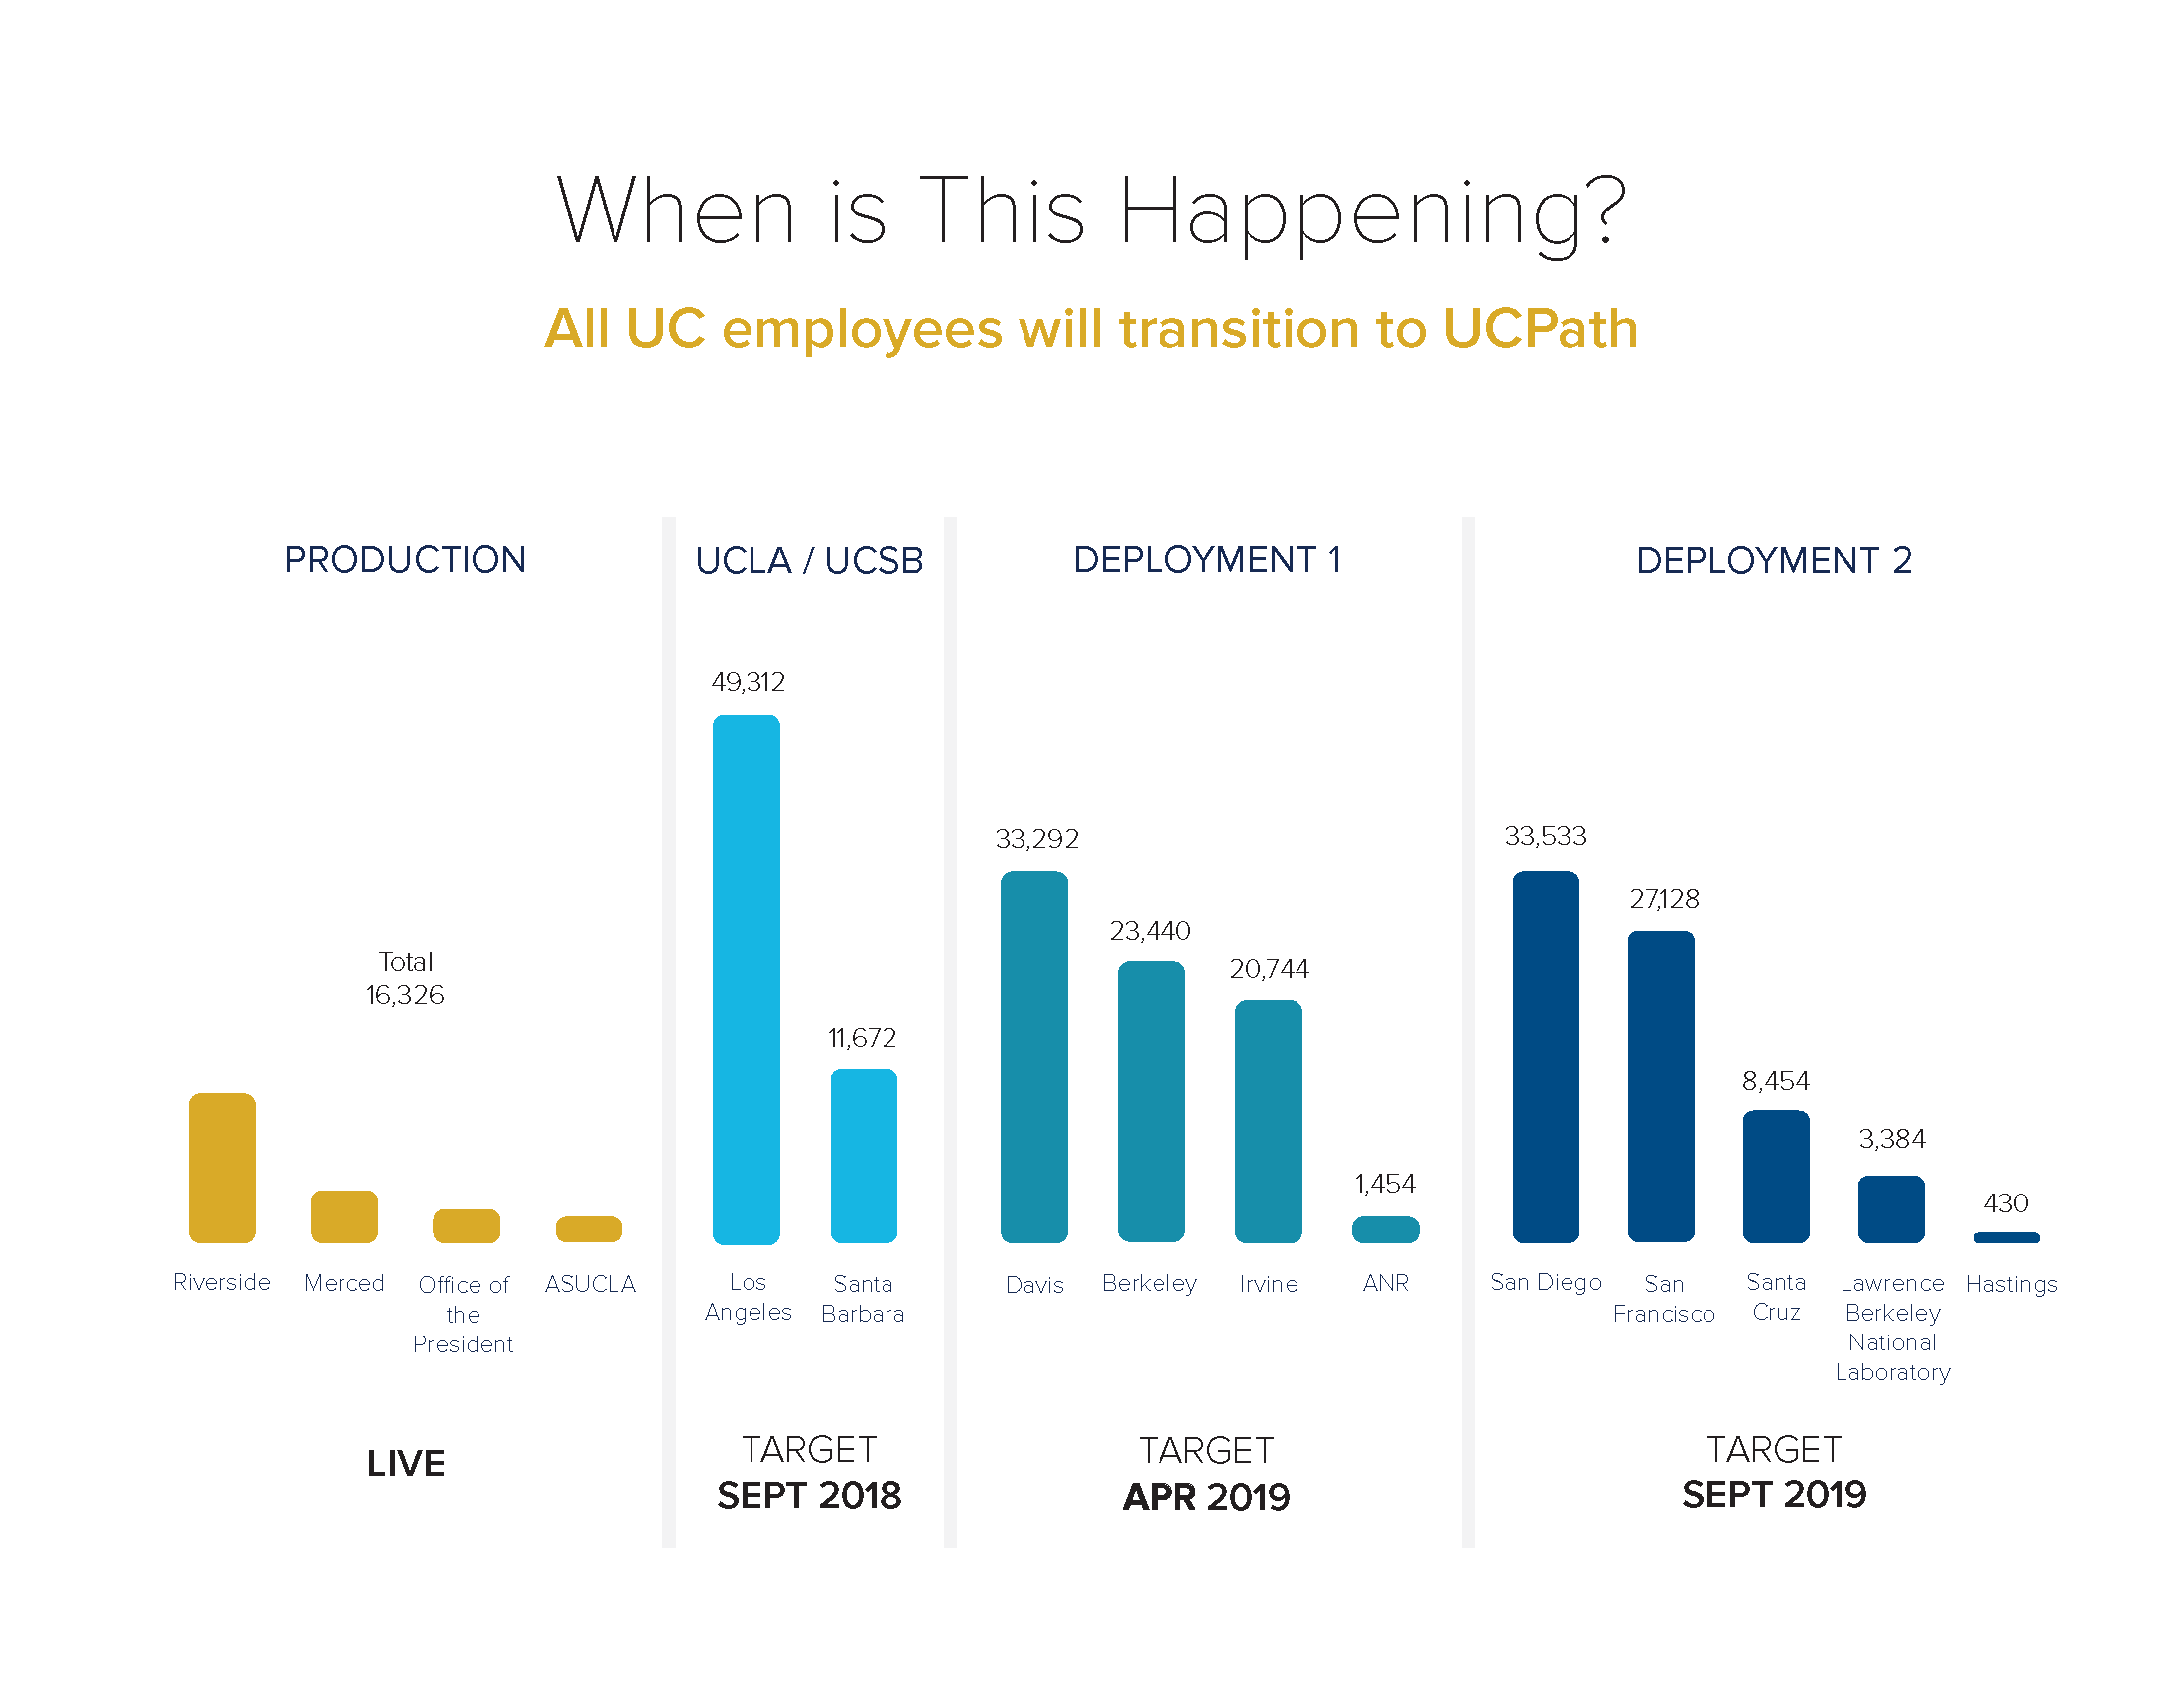 UCPath deployment timeline shows UC Davis with 33,292 employees to deploy April 2019